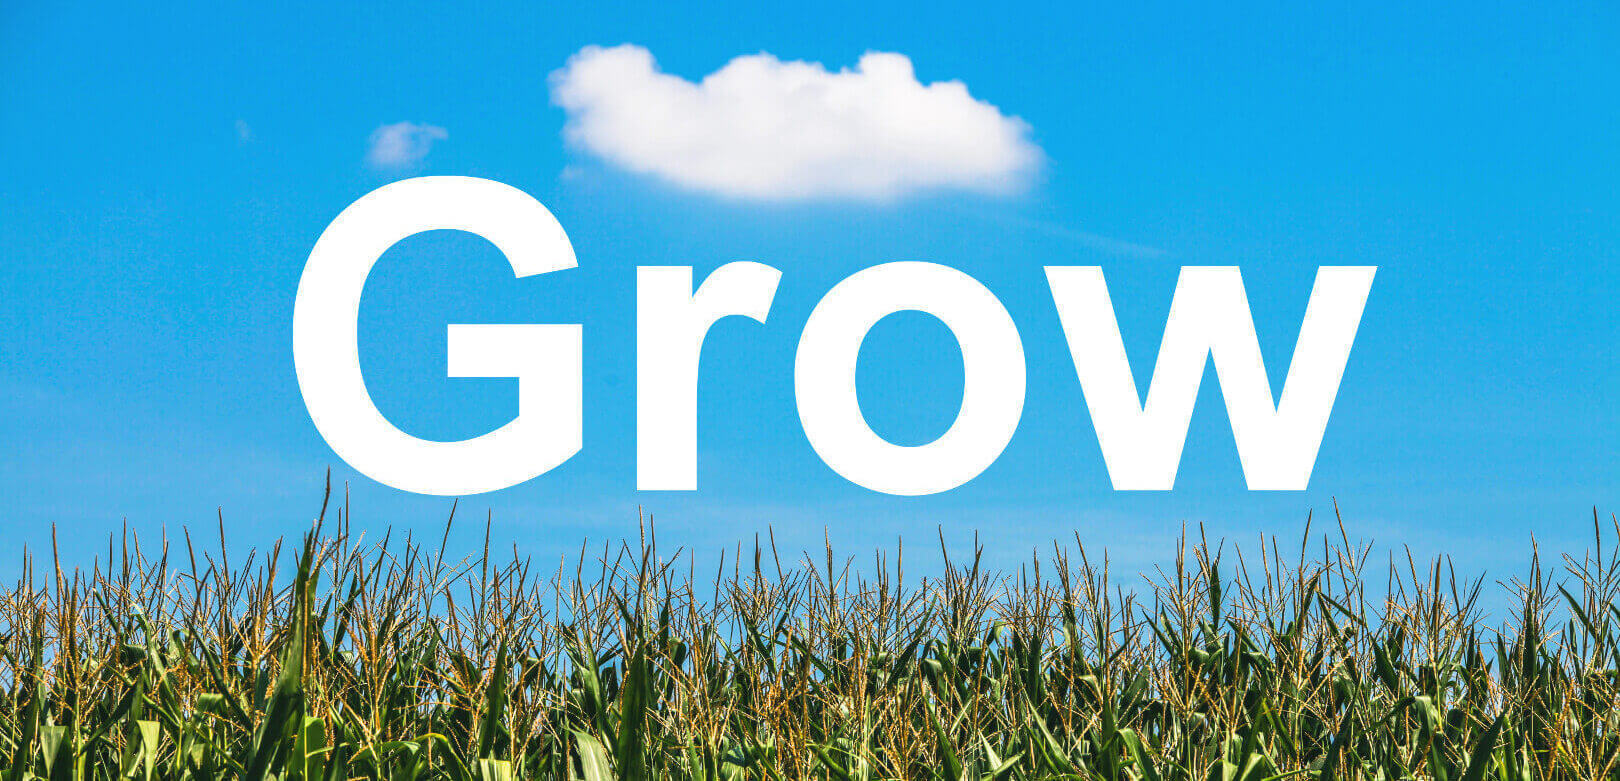 """picture of a cornfield with the word """"Grow"""" written in the blue sky"""